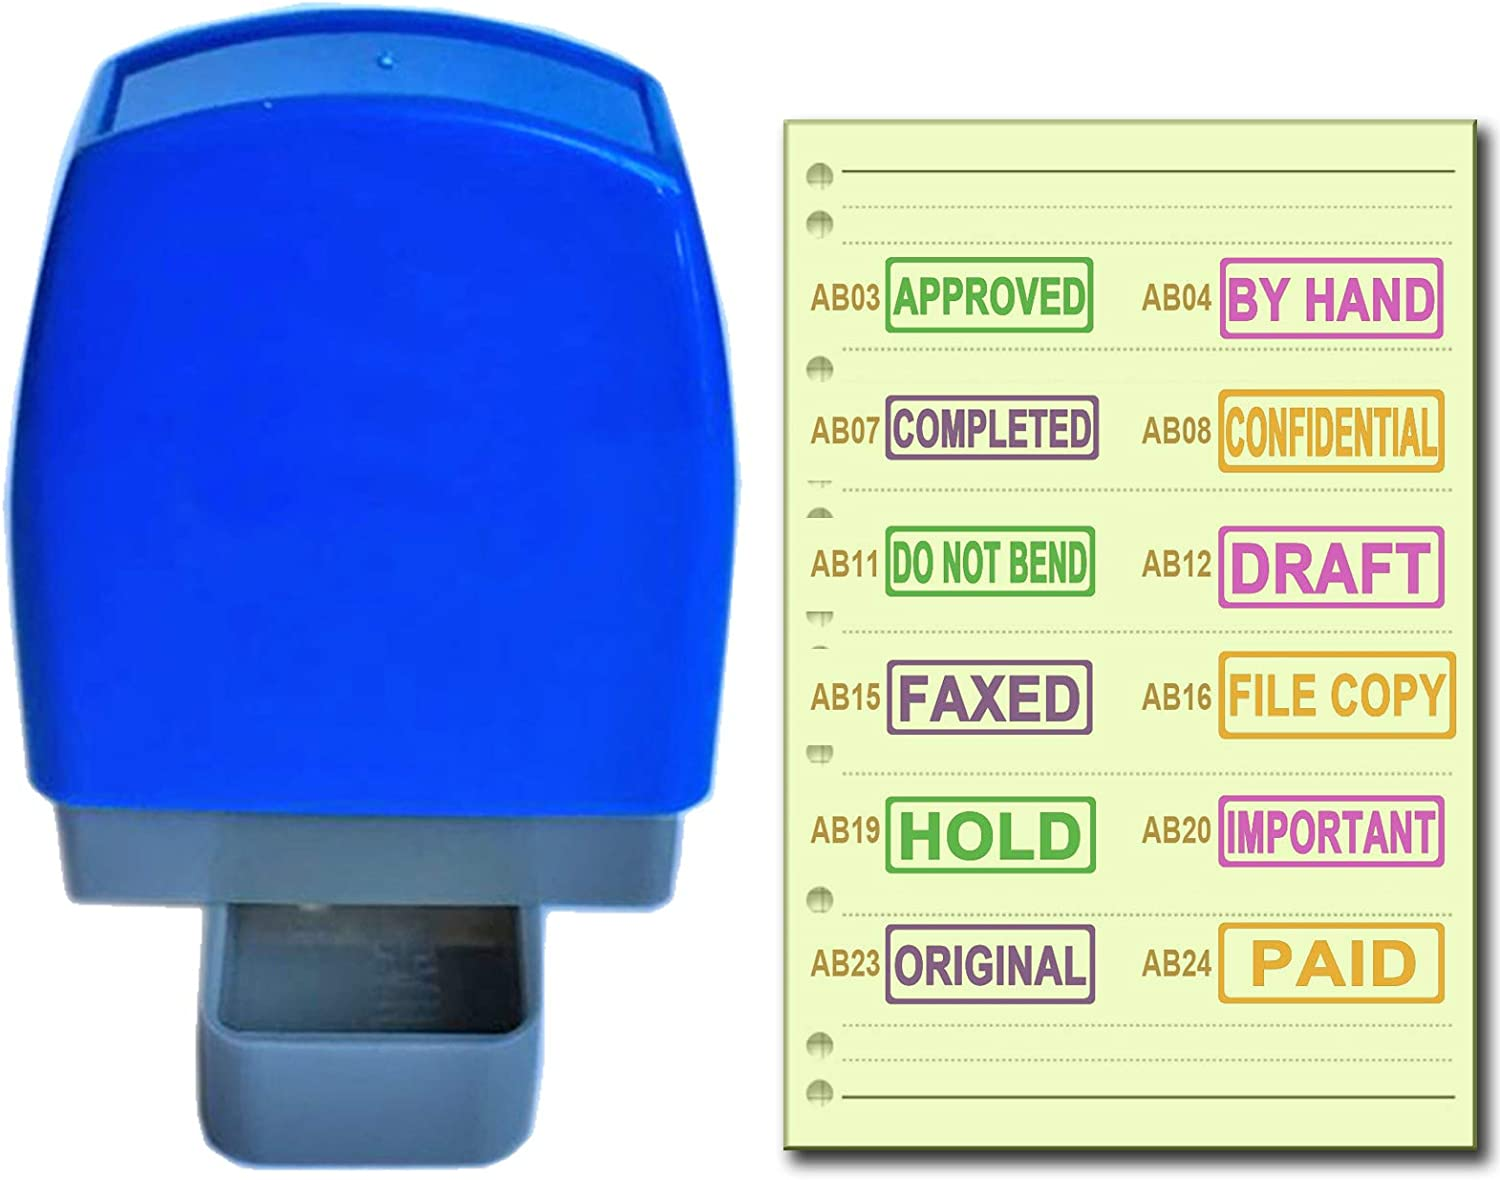 SSEELL Set of 4 Self Inking Pre-Inked Office Stamp, Account Stamp Rubber RE-inkable Office Stationary Flash Stamps Business Paper Work Stamps - Over 70 Options and Eight Ink Colors to Customize